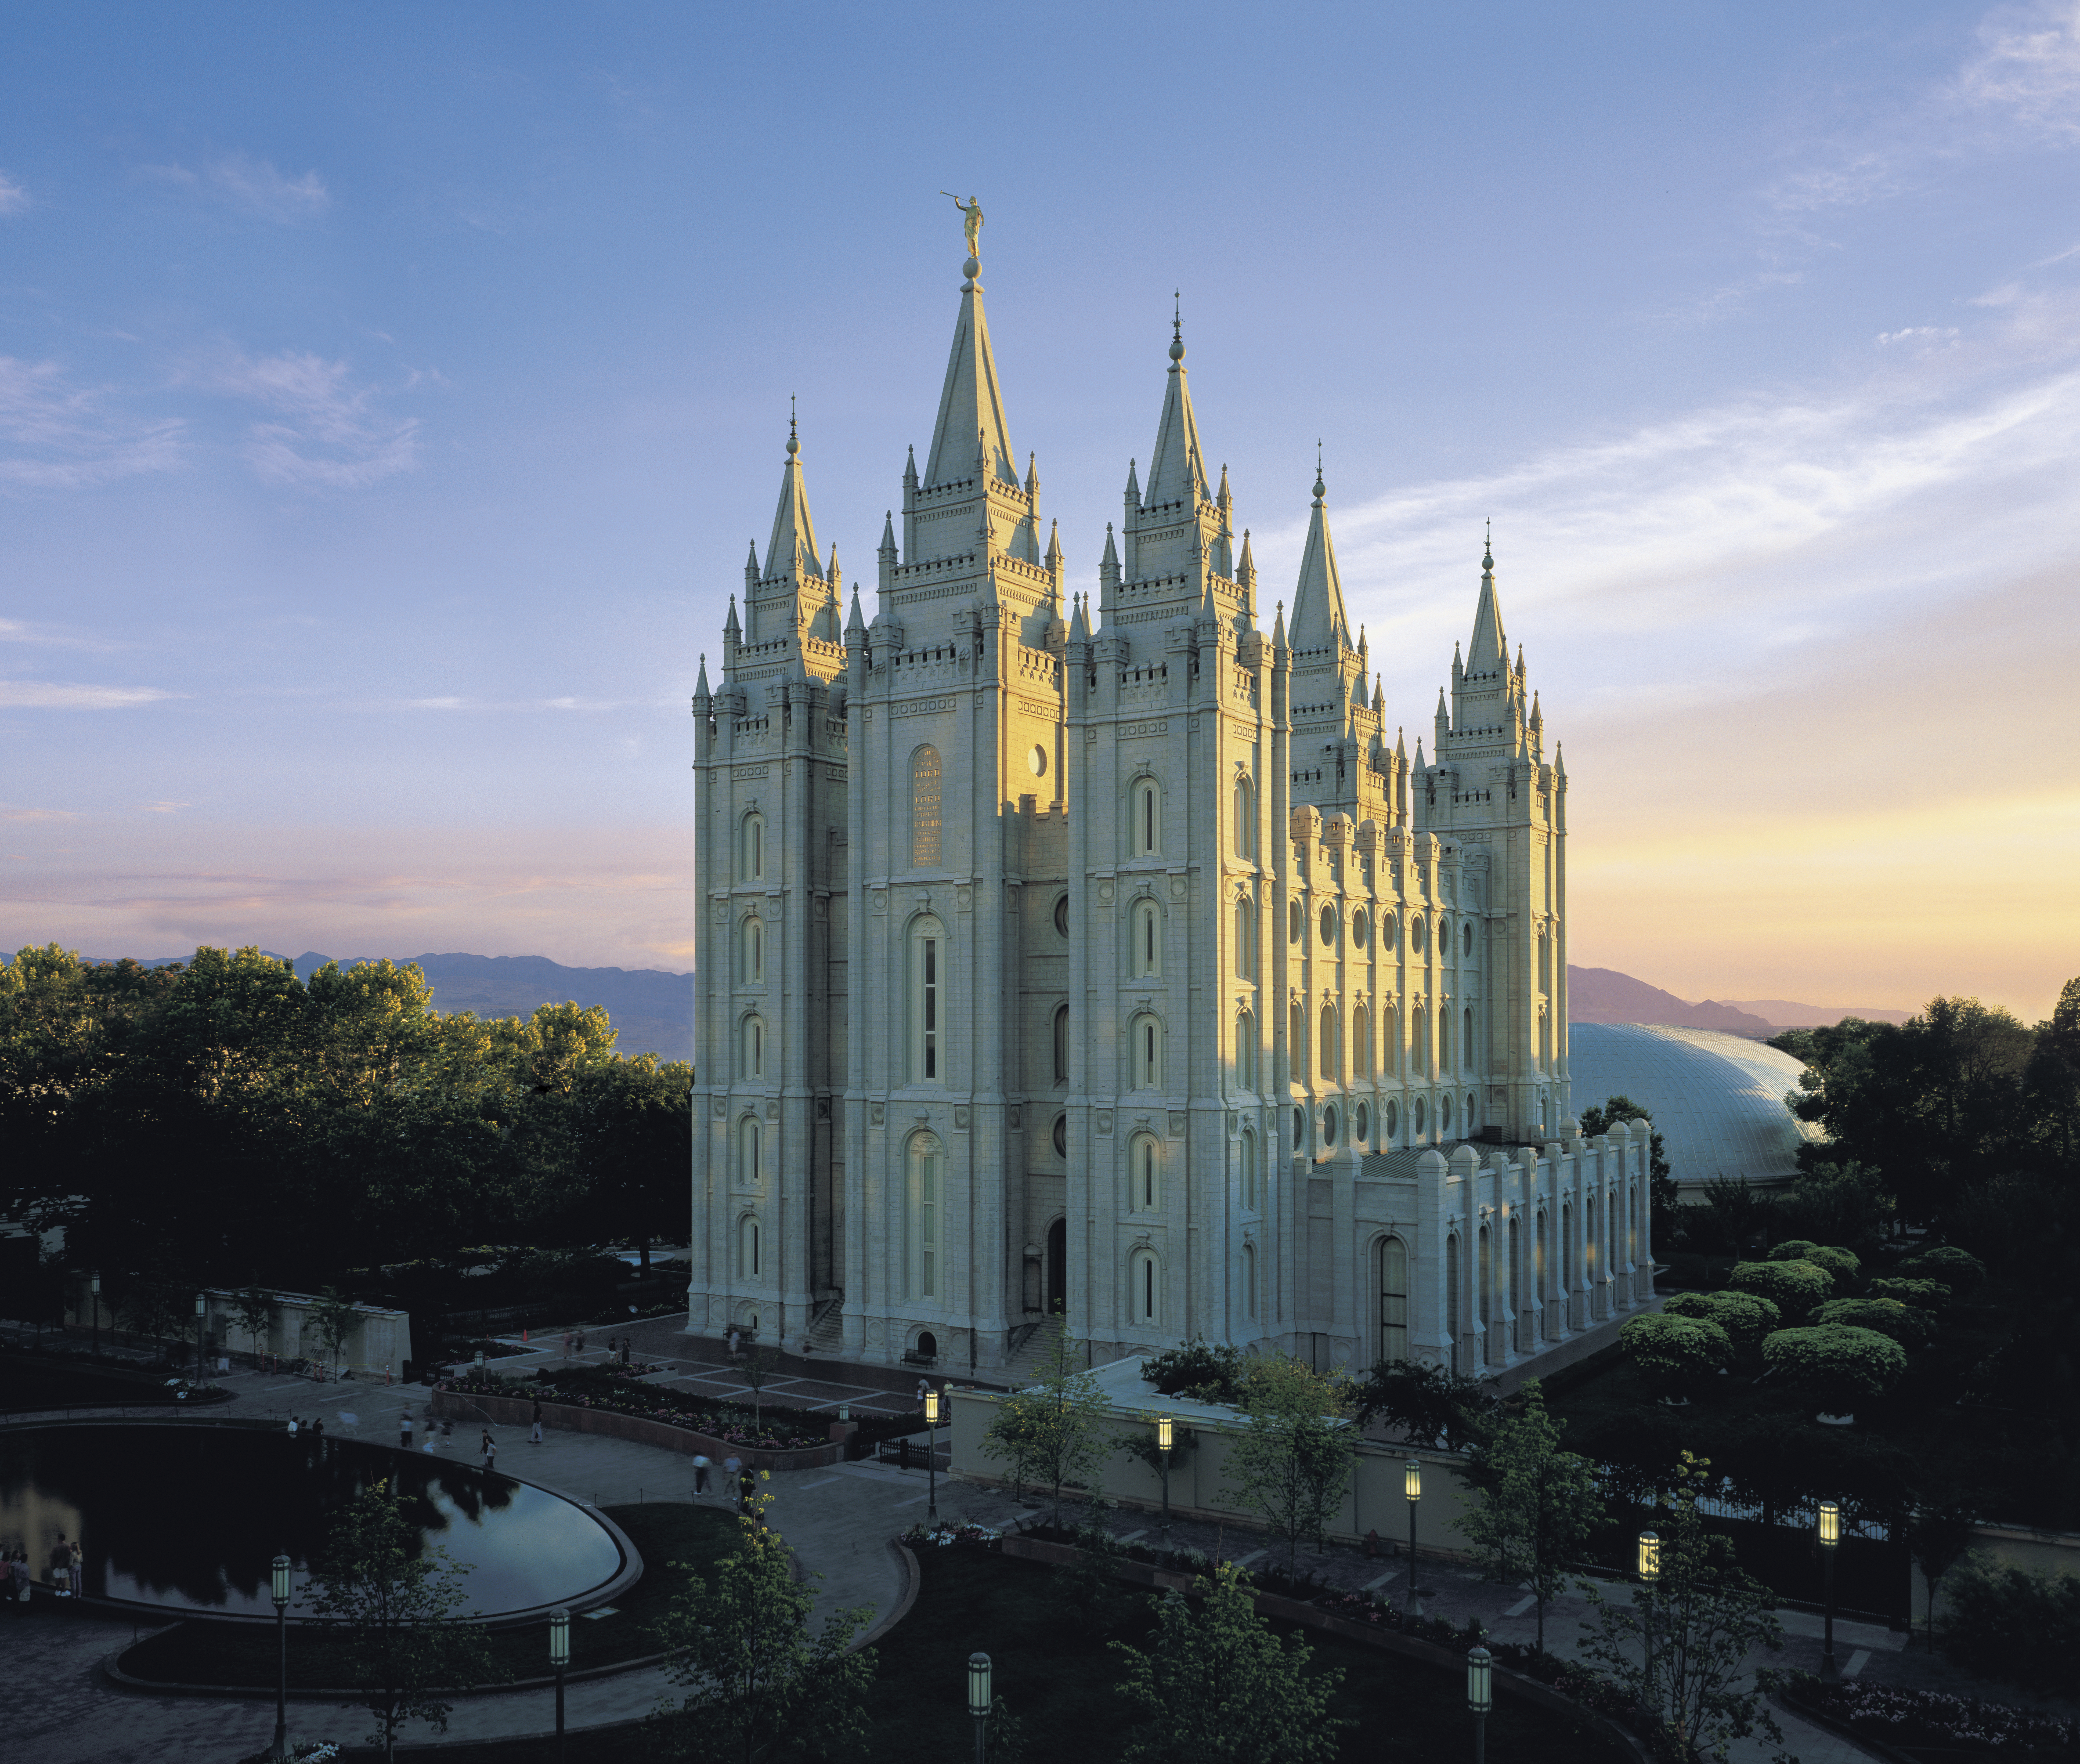 The Salt Lake Temple and a portion of Temple Square at sunset.